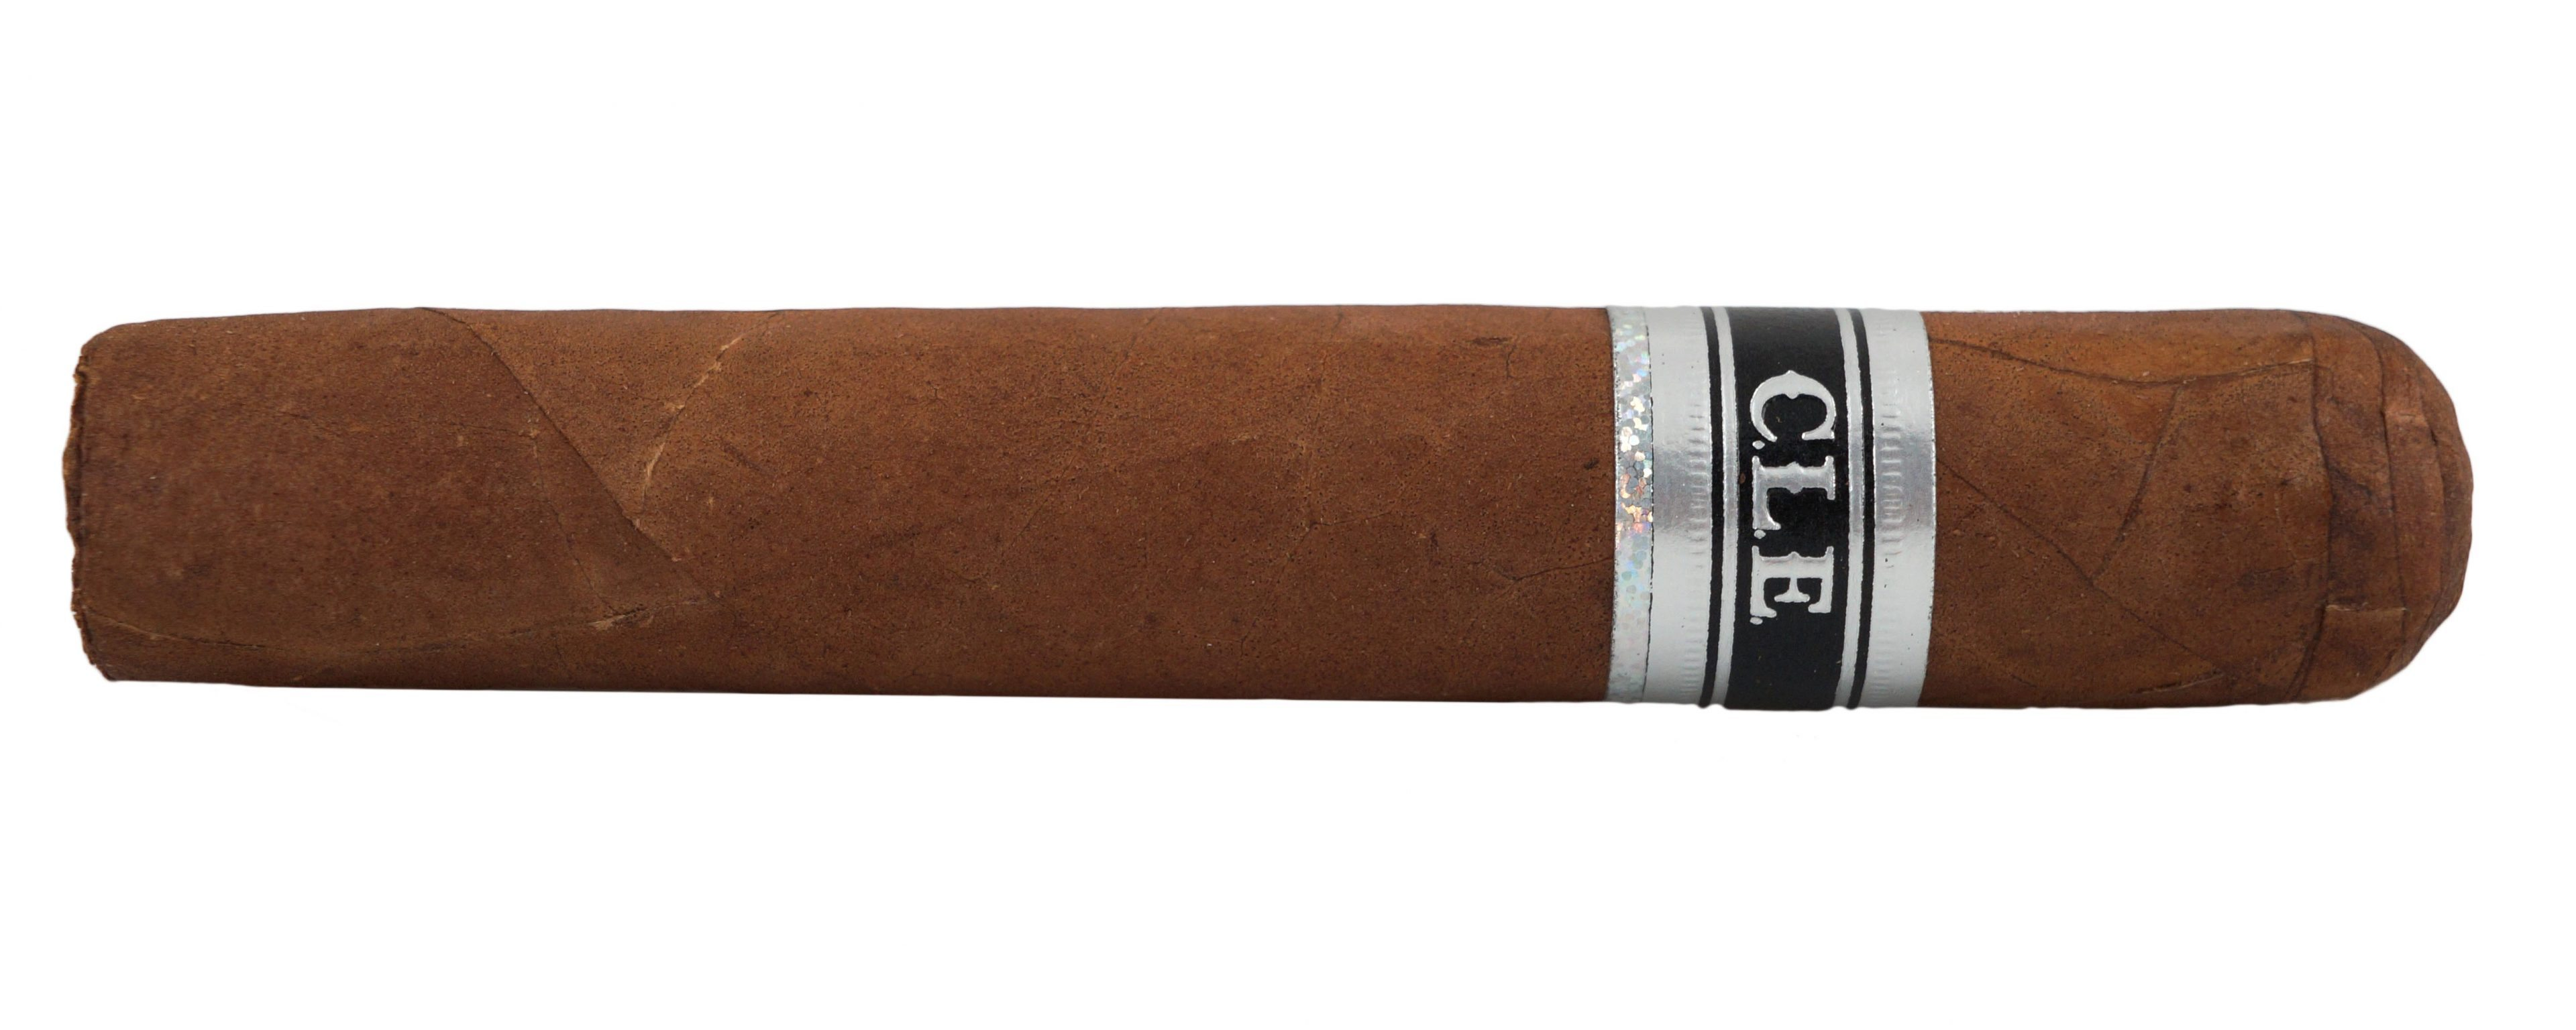 Blind Cigar Review: C.L.E. | Signature 2015 Robusto